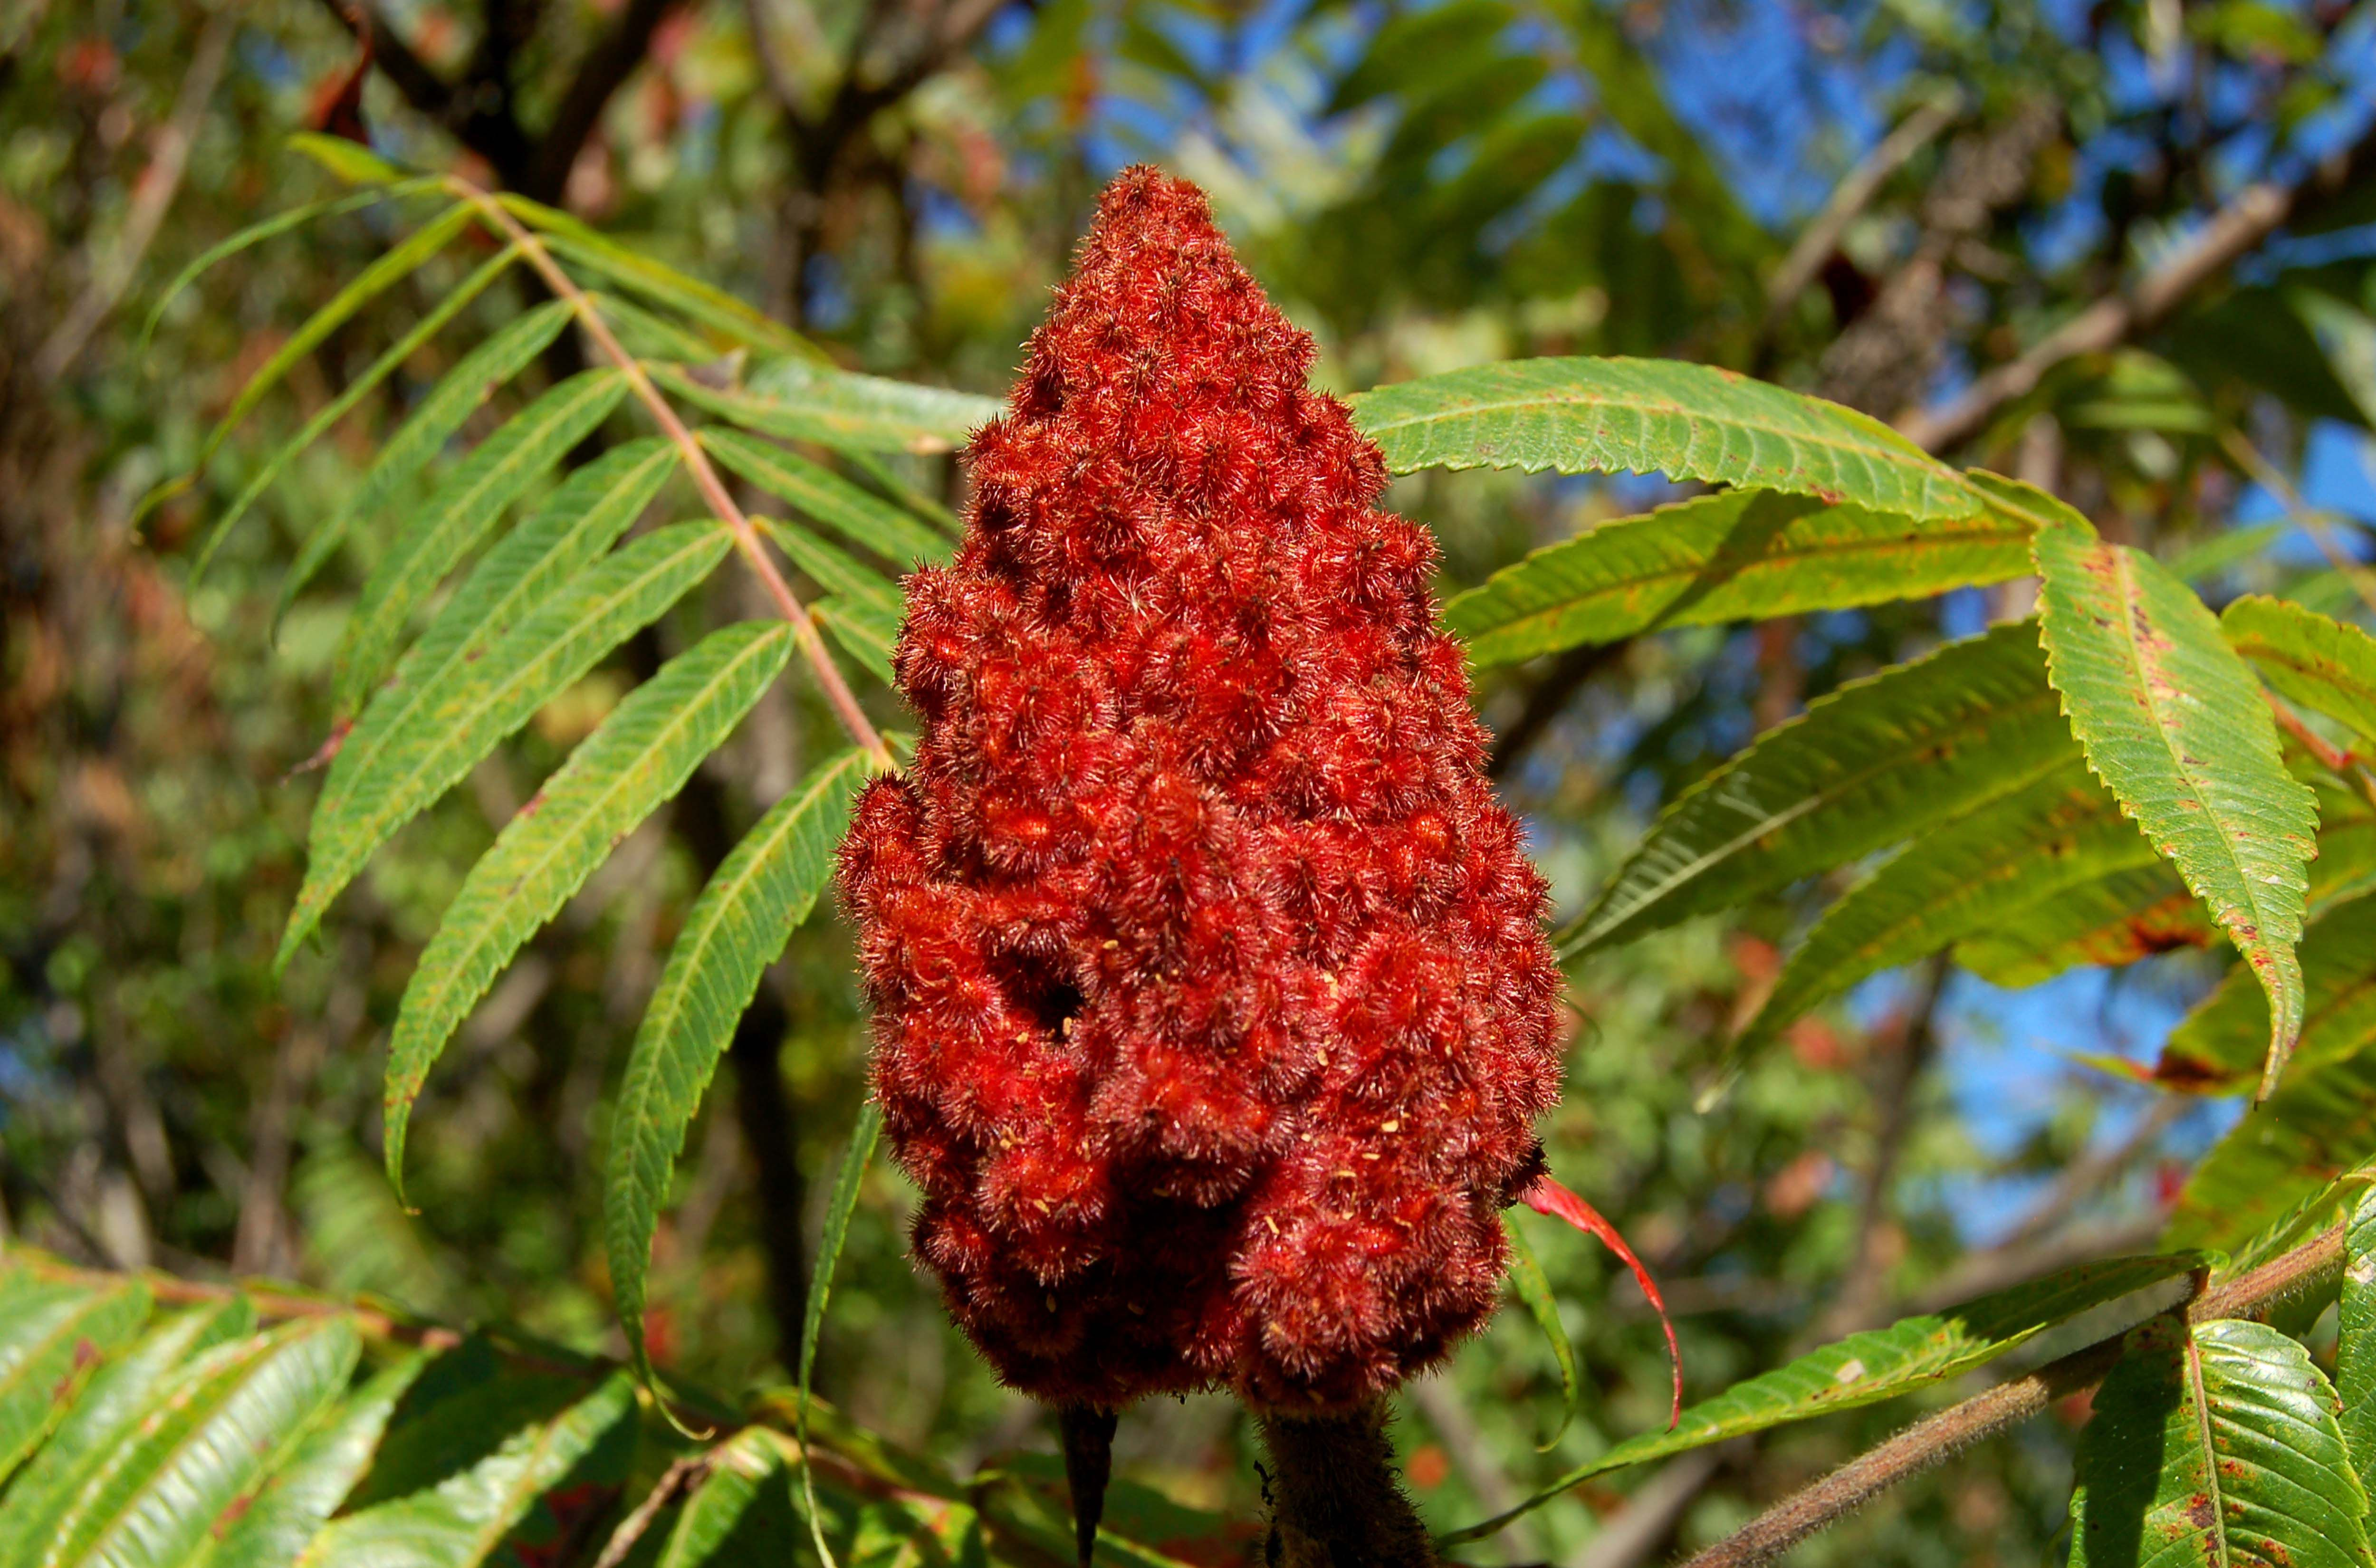 Pictures of Poison Sumac for Identification